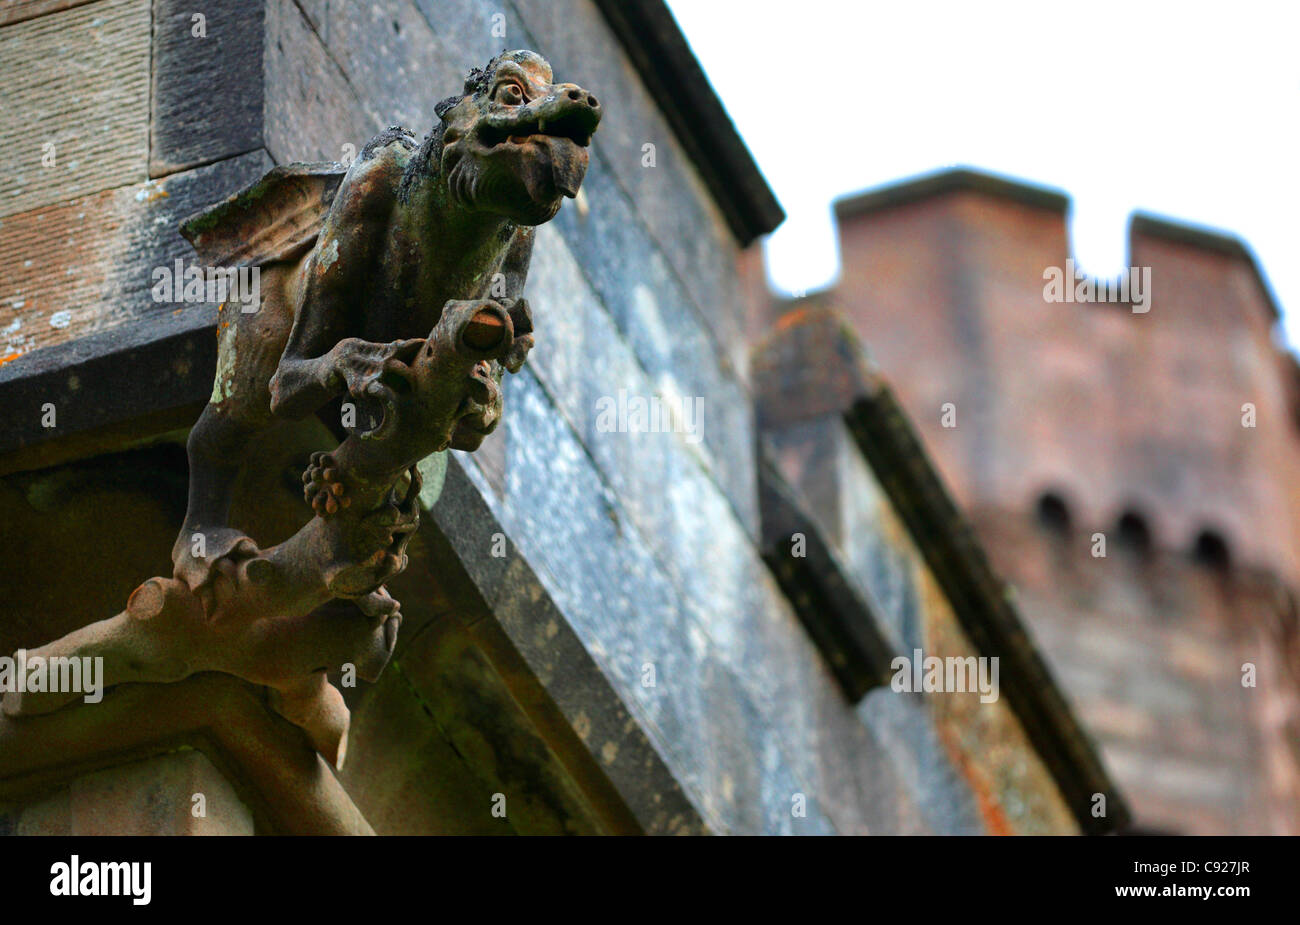 Lews castle is a historic building with decorative water spouts at stock photo royalty free - Decorative water spouts ...